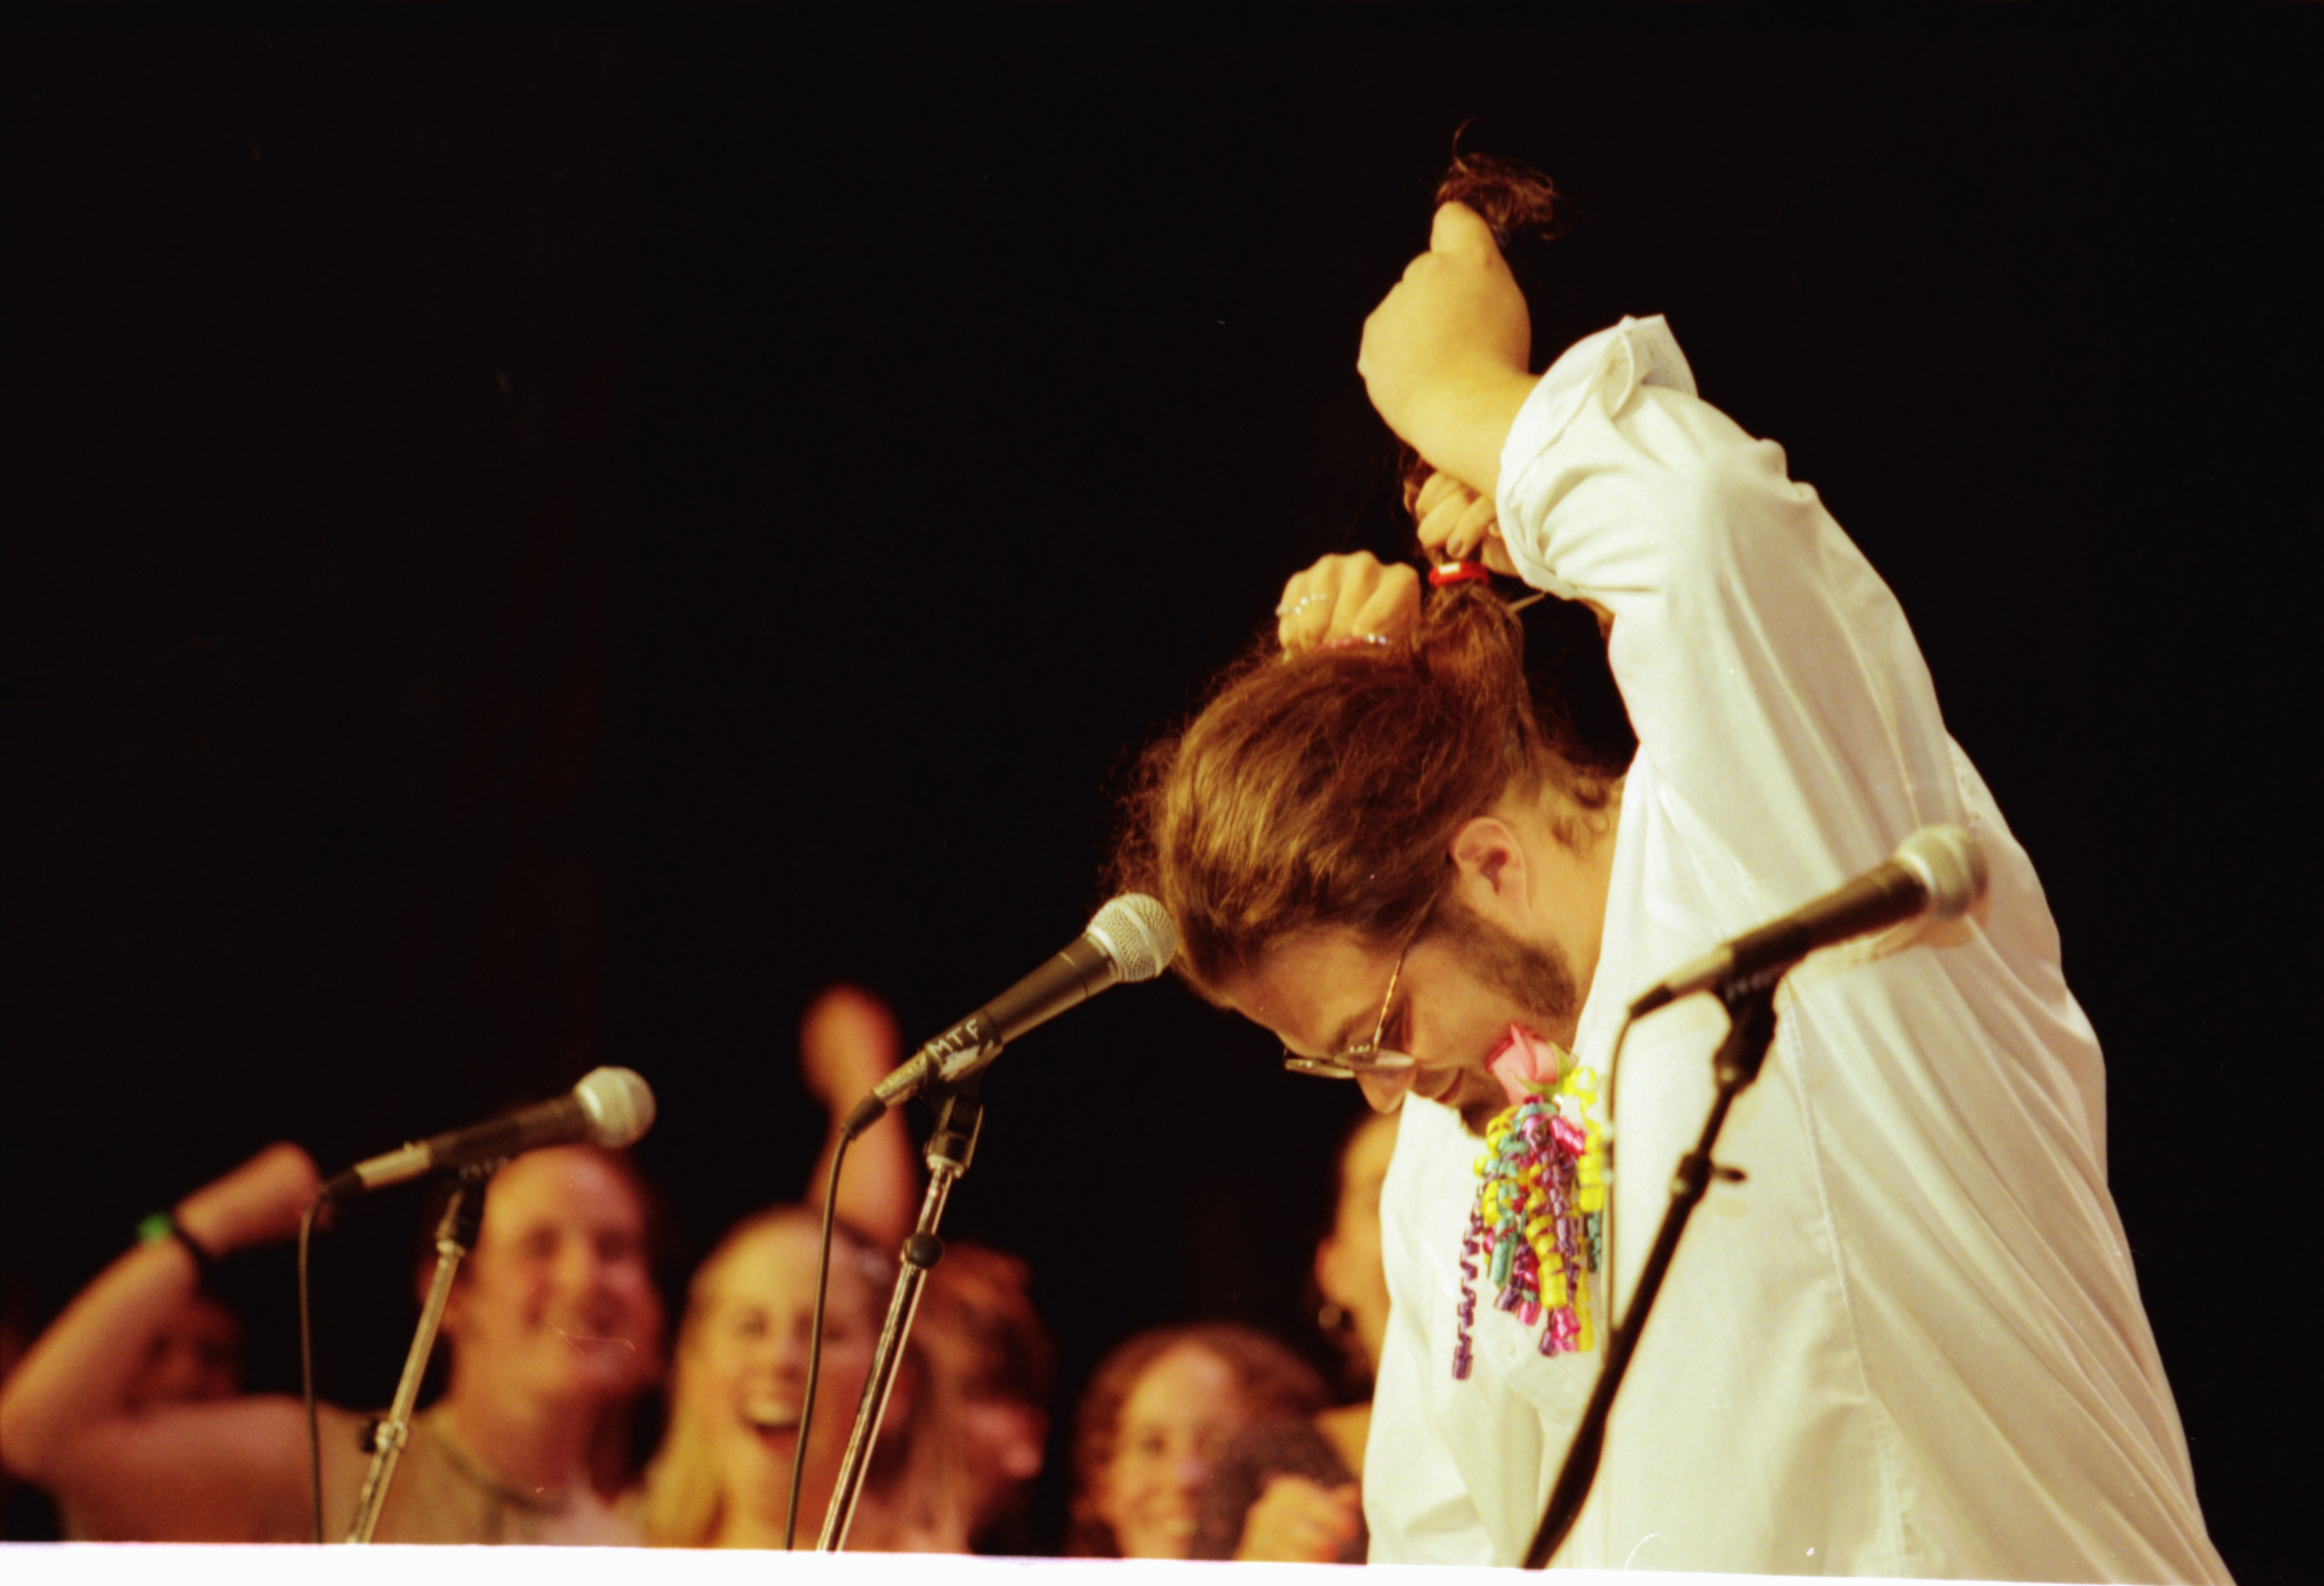 Community High Graduate Snips Hair at Commencement, June 1997 image